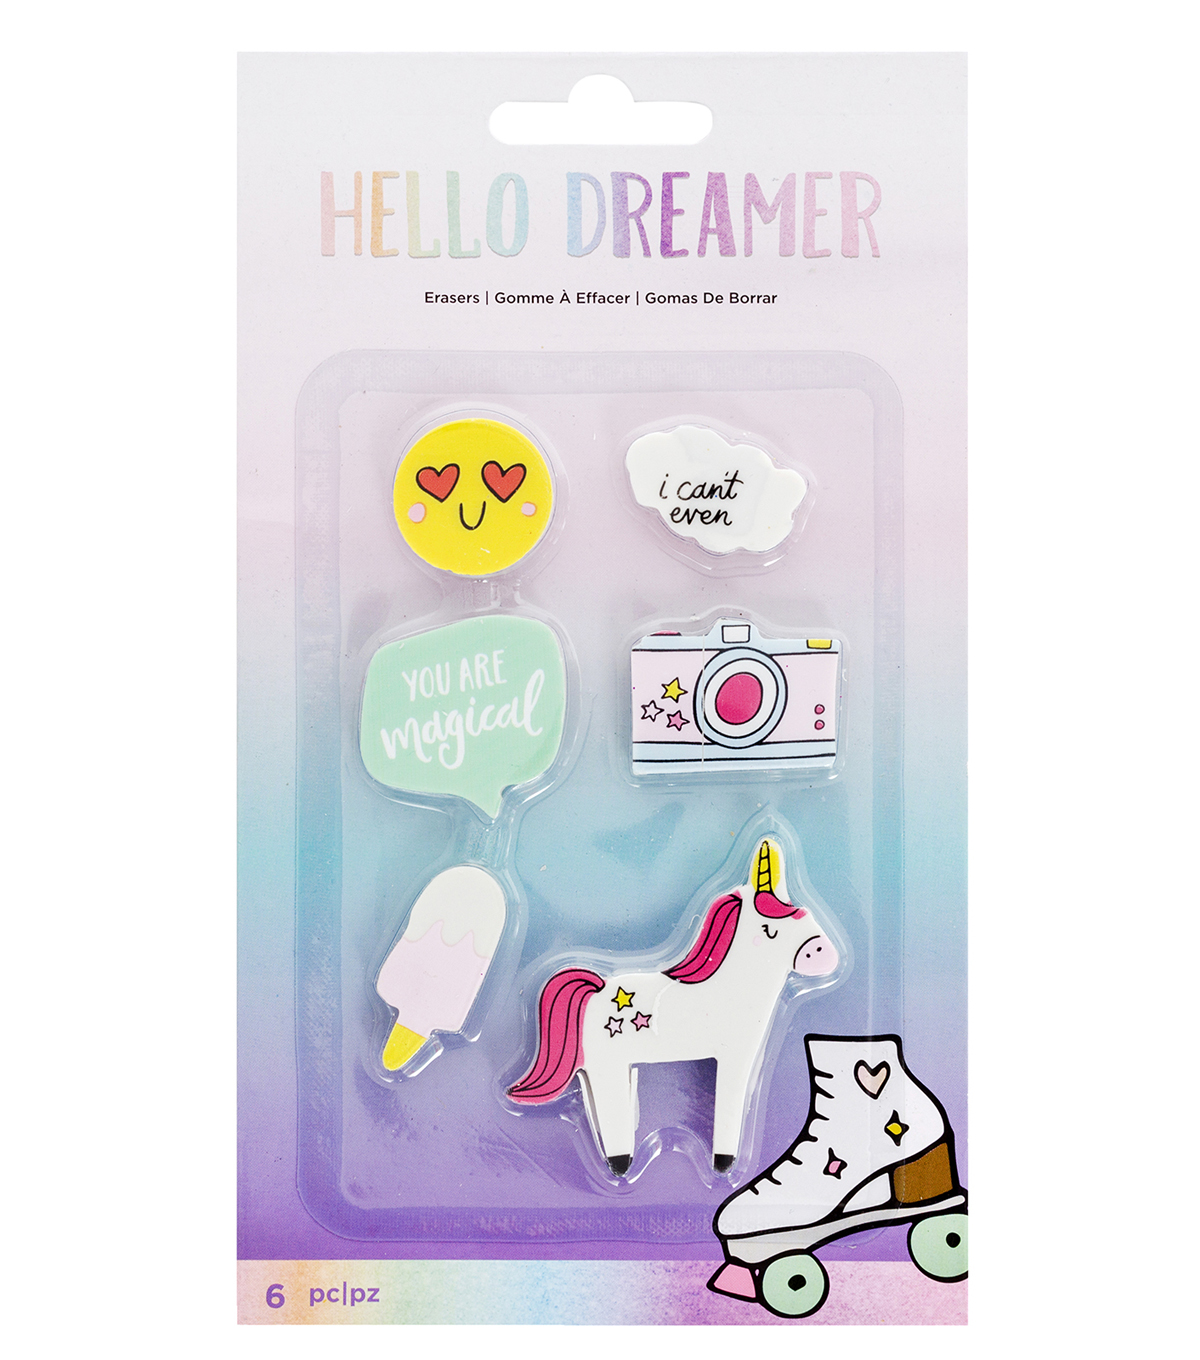 American Crafts Hello Dreamer 6 pk Erasers